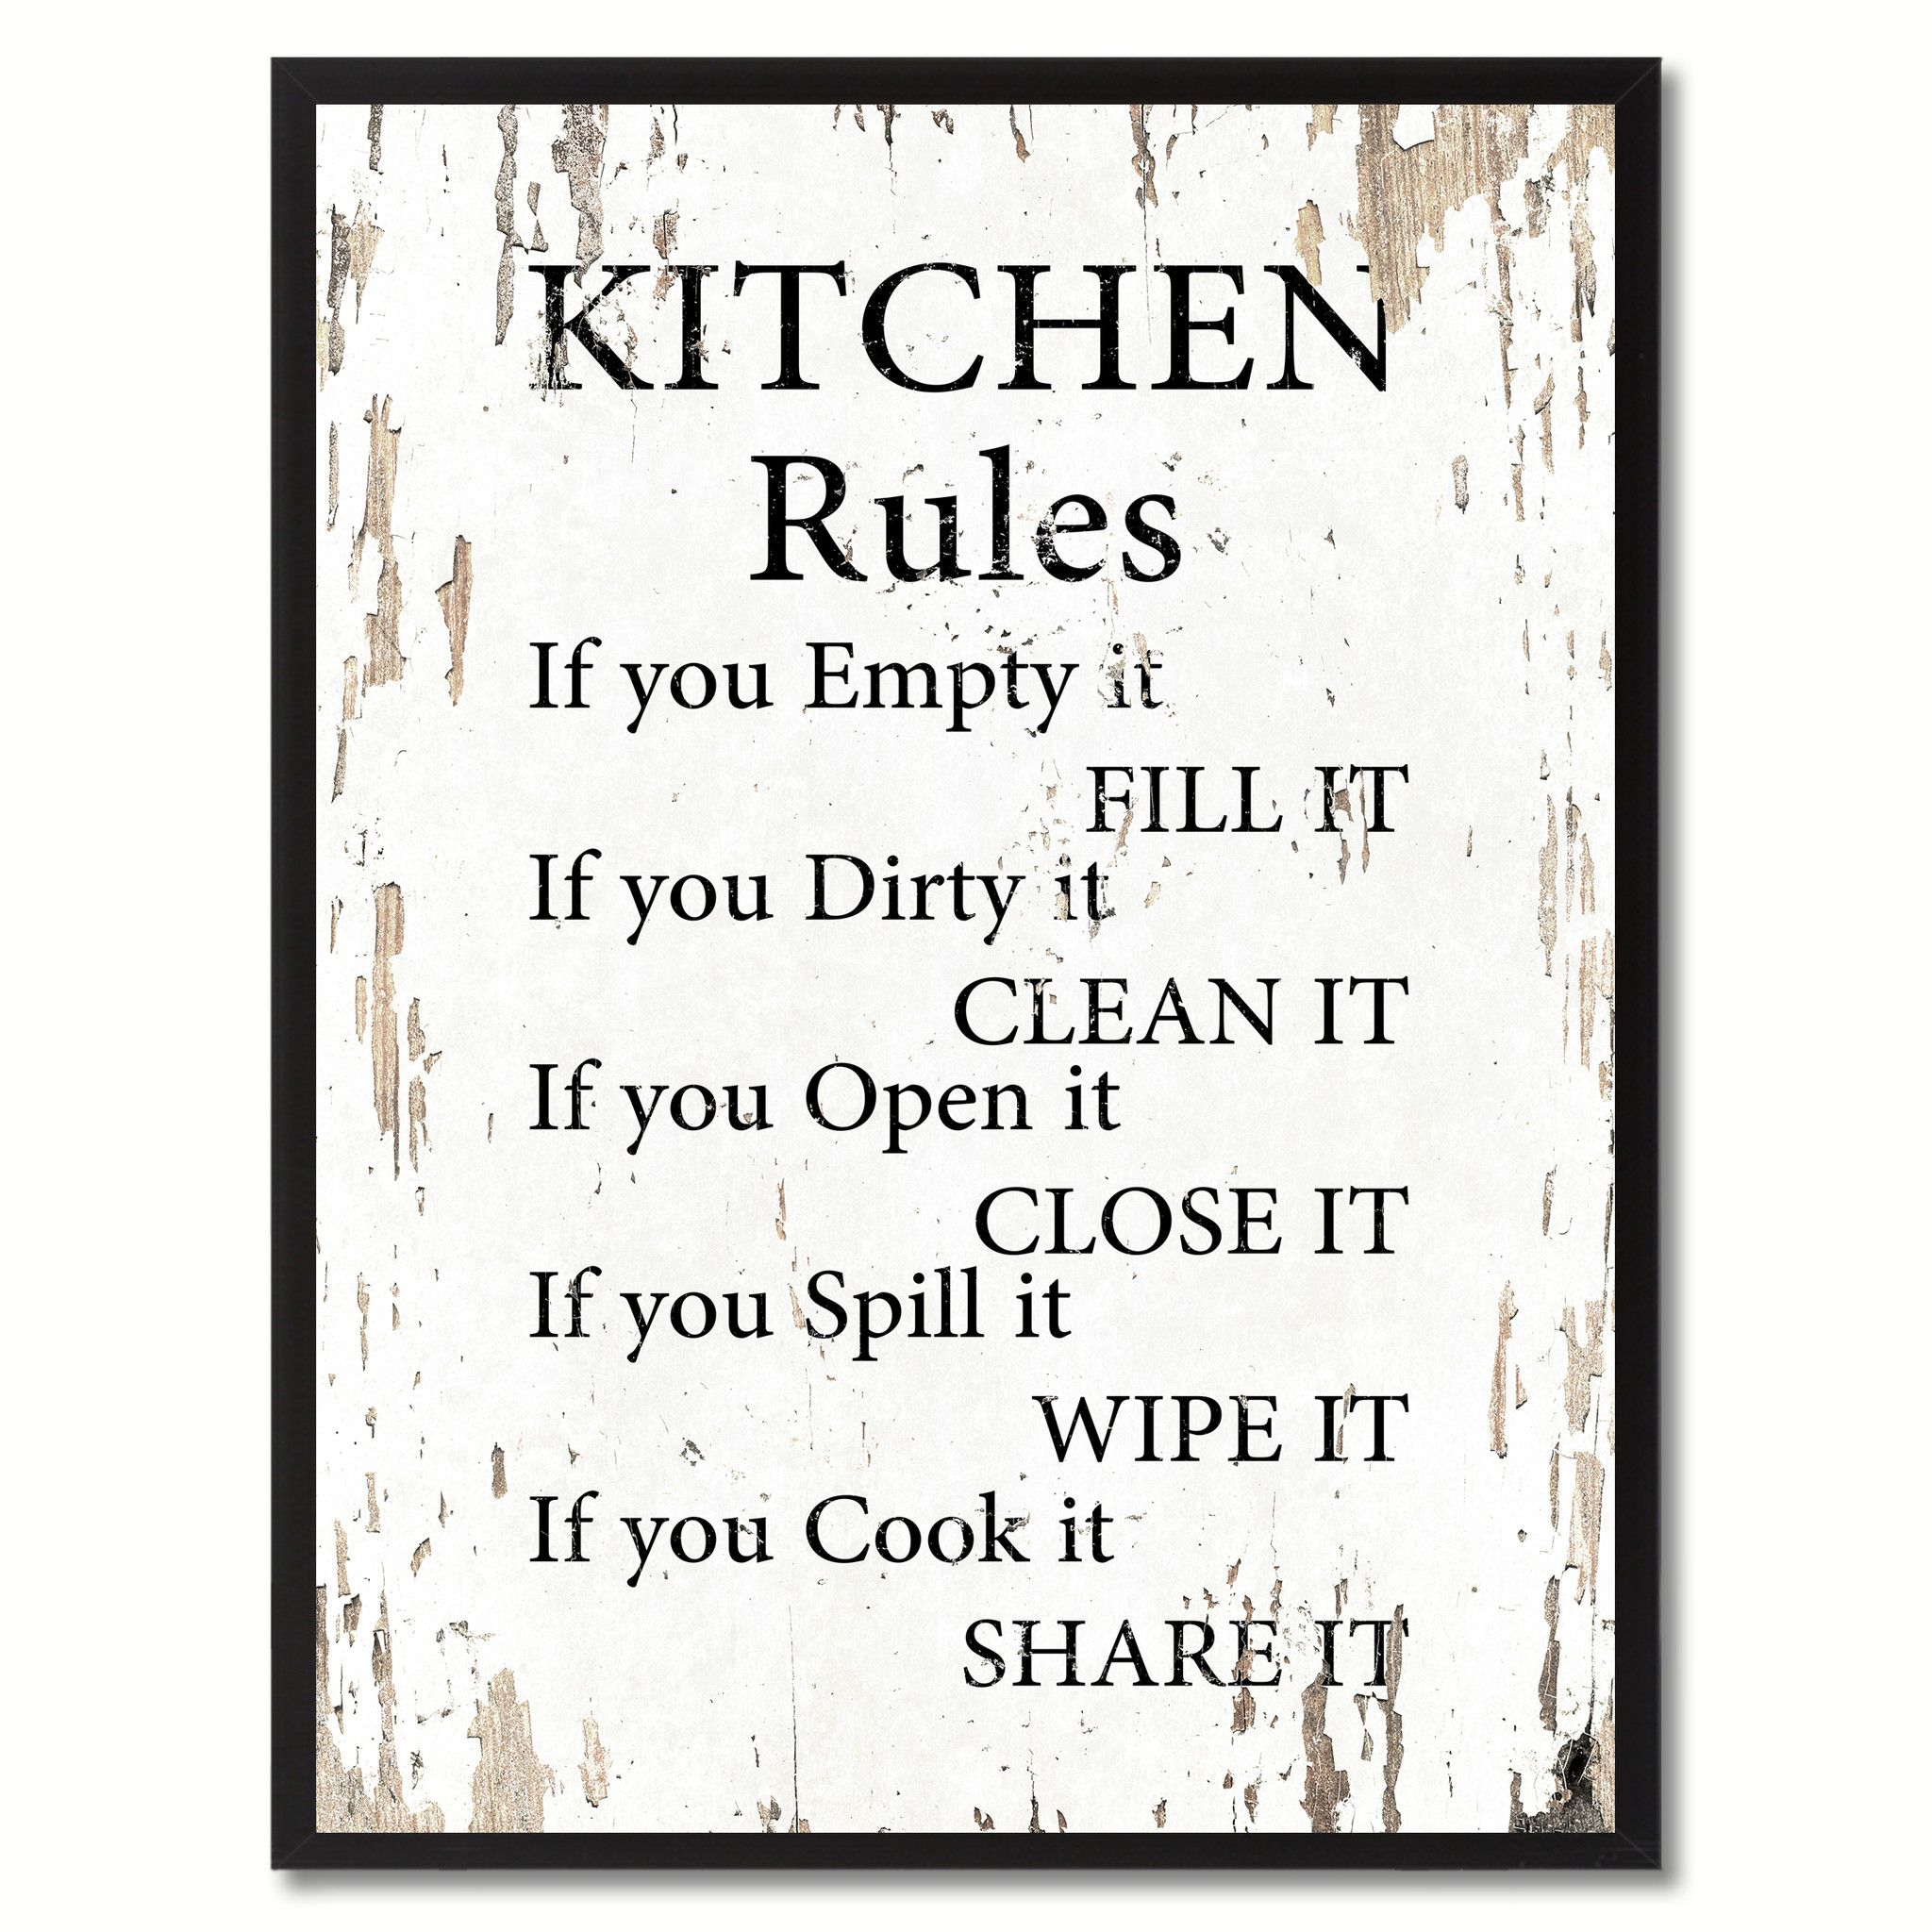 Kitchen Rules Saying Canvas Print Black Picture Frame Home Decor Wall Art Gifts Kitchen Rules Cheap Home Decor Home Decor Wall Art